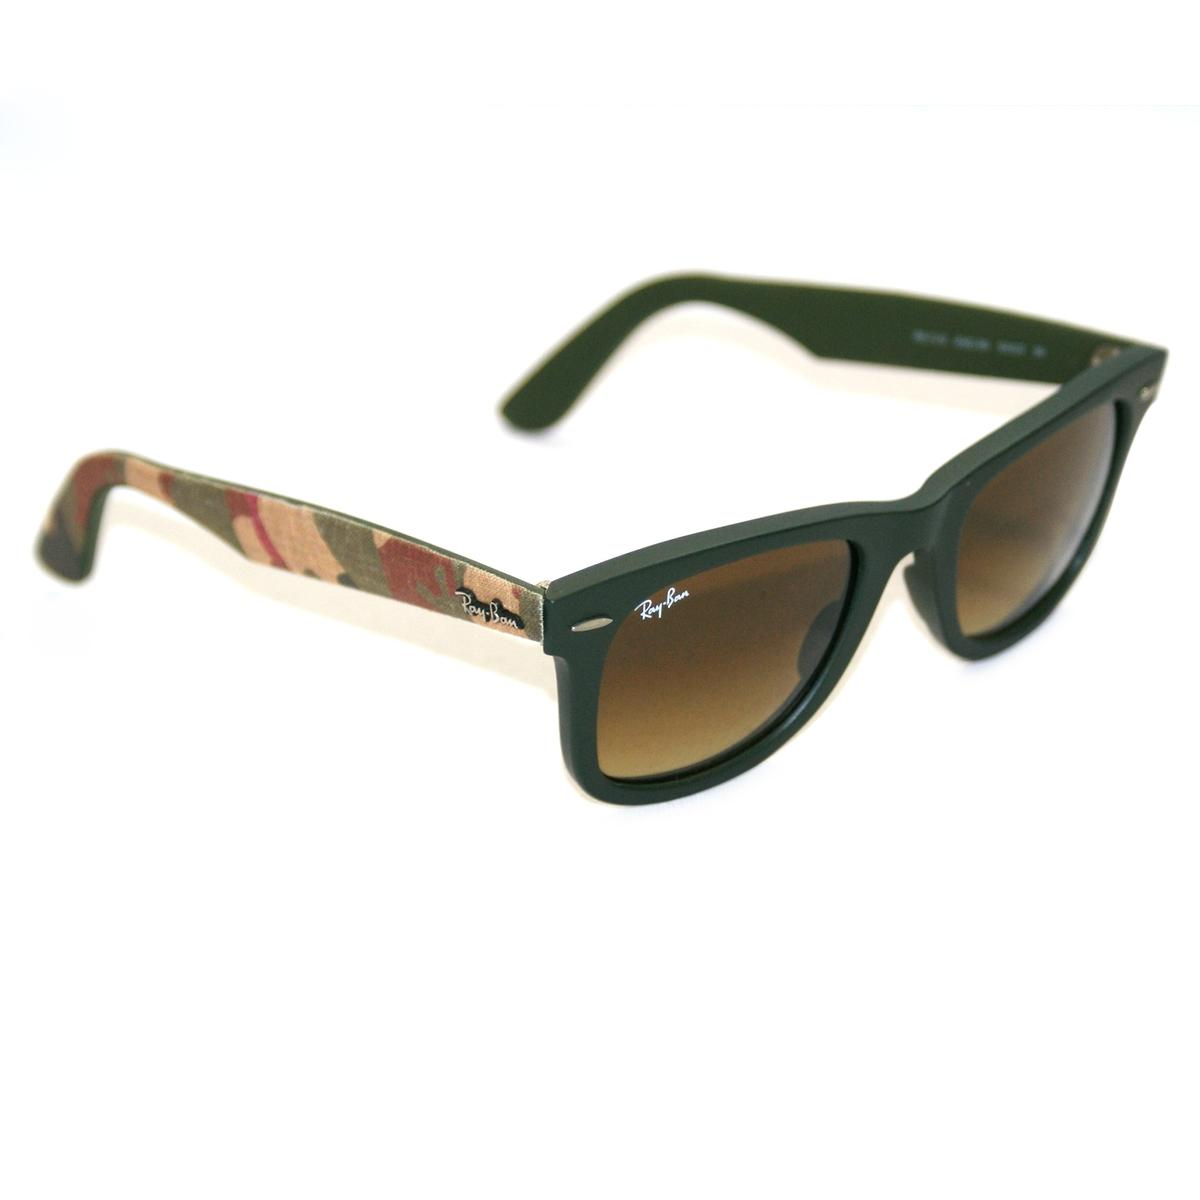 306b290d520 Ray Ban Spectacles Malta